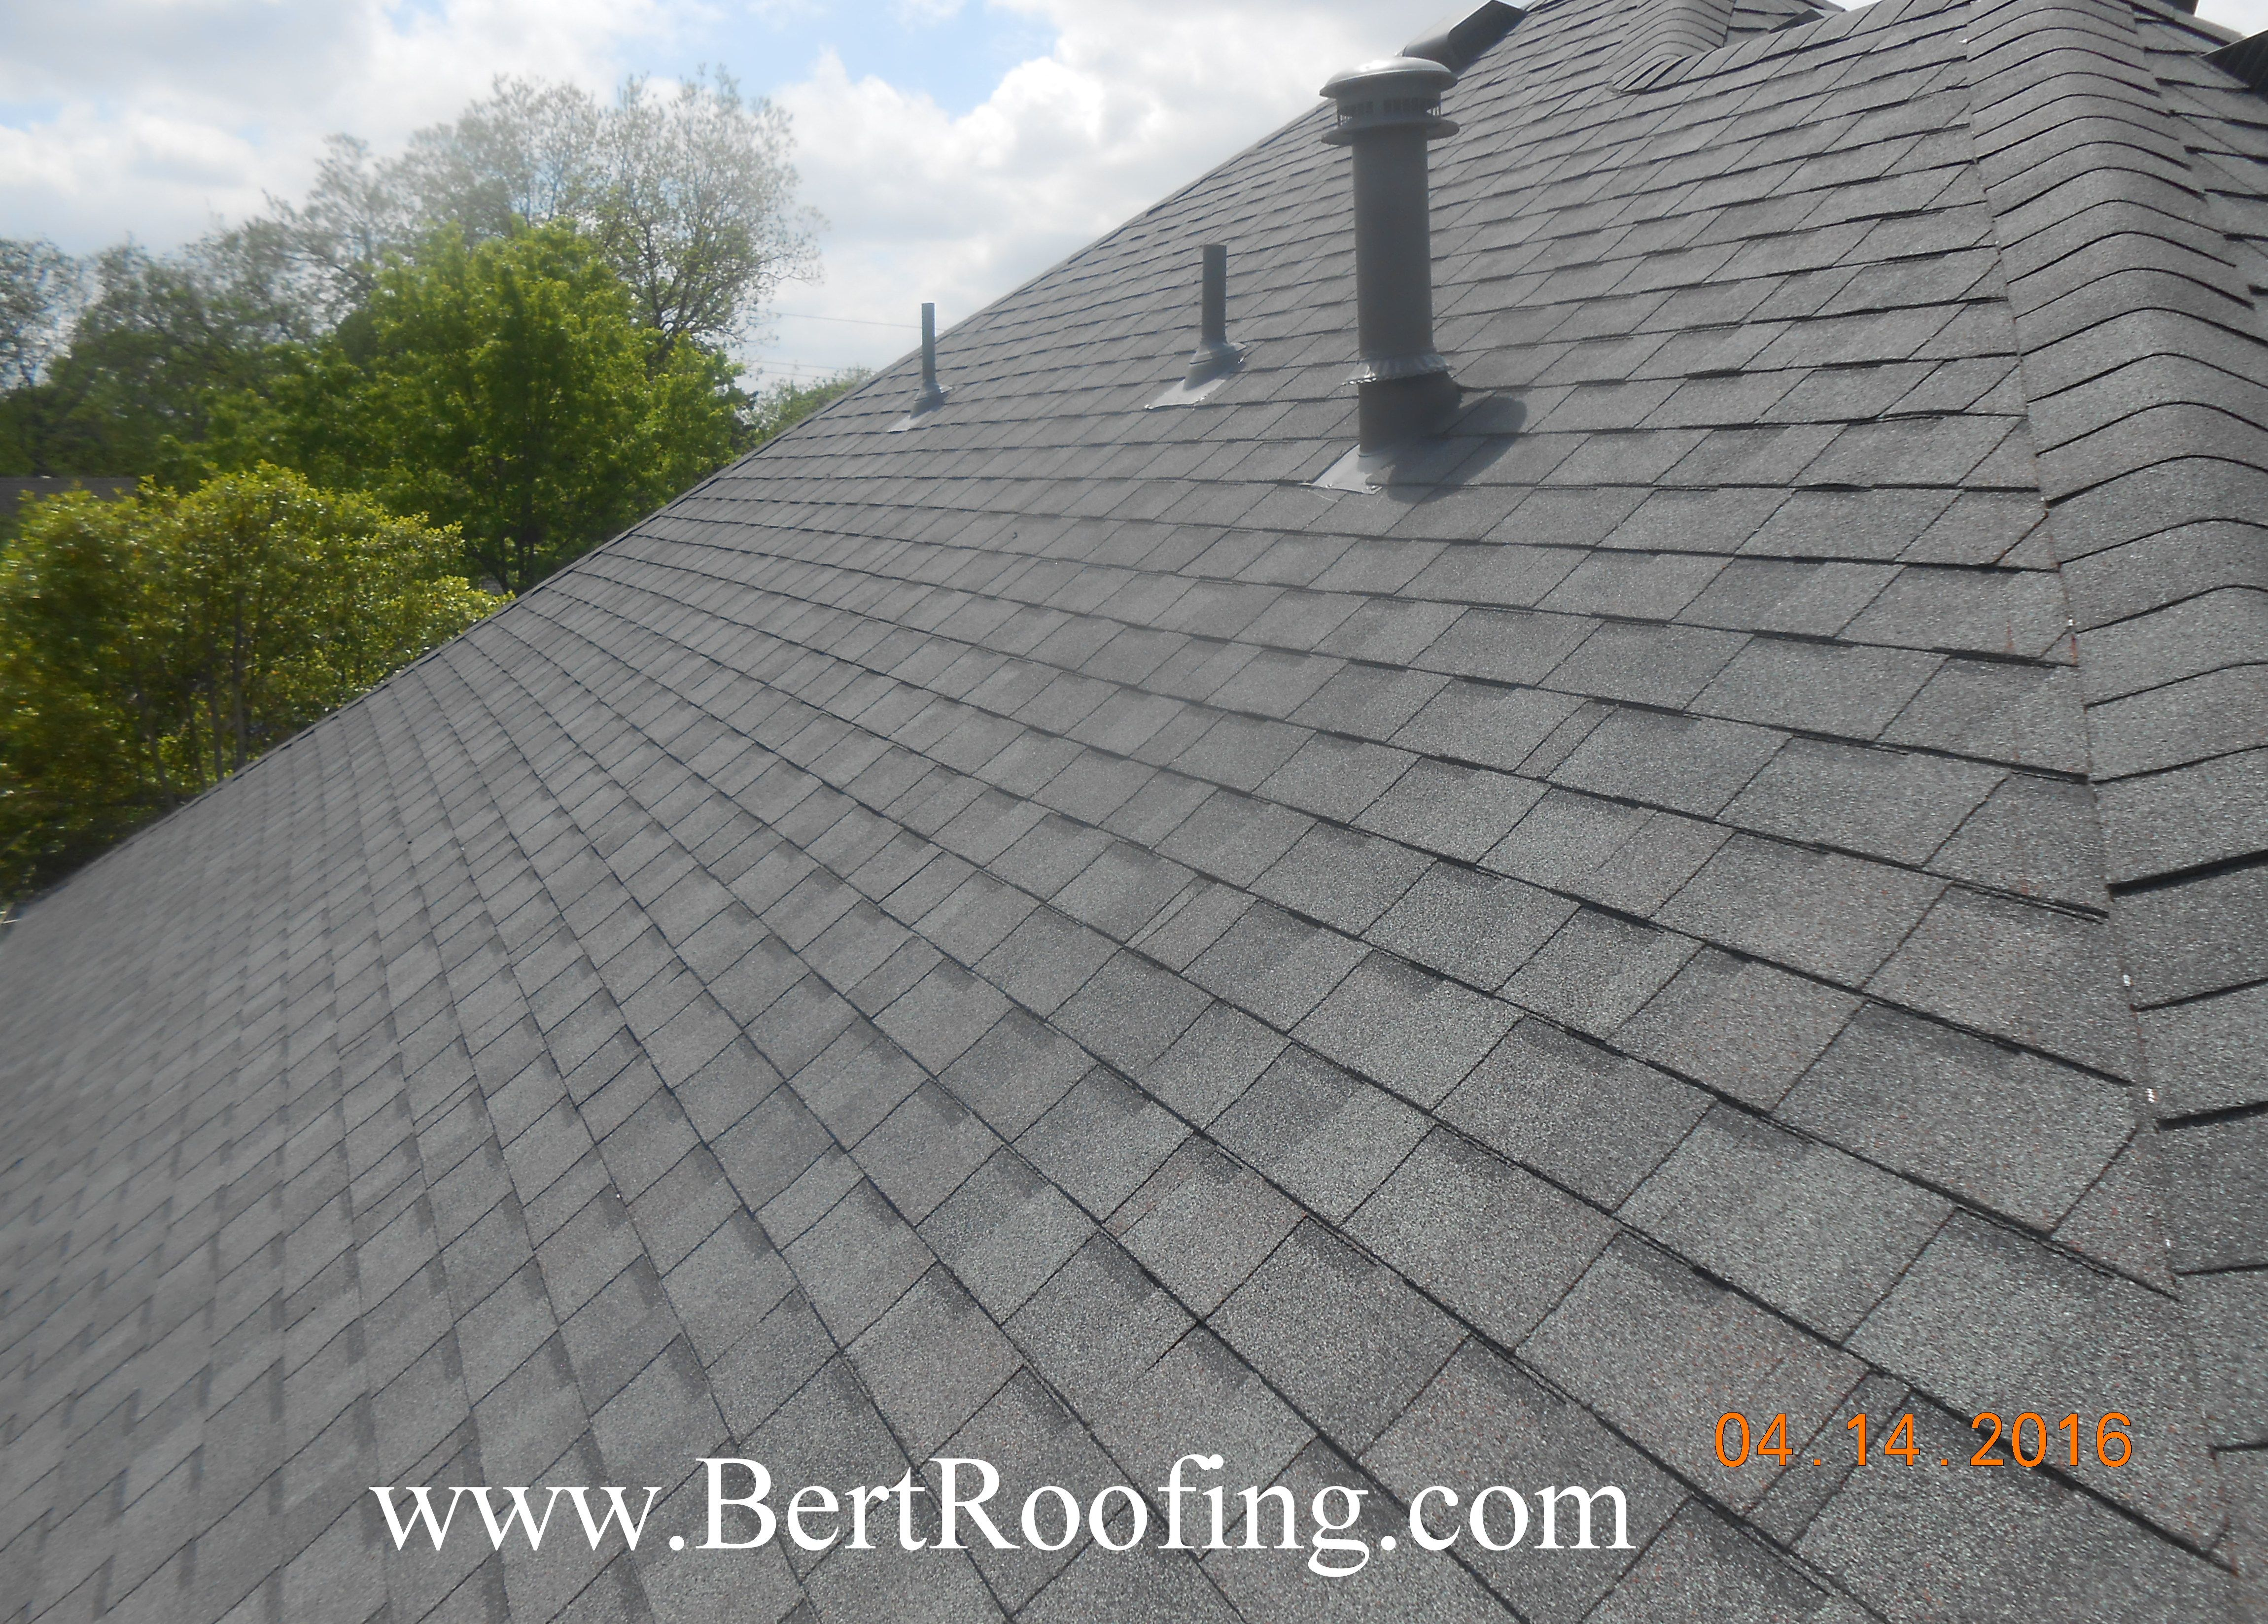 Certainteed Landmark Composition Shingle Color Colonial Slate Installed By Bert Roofing Inc Of Dallas In Sachse On April 2 Shingle Colors Roofing Roof Colors